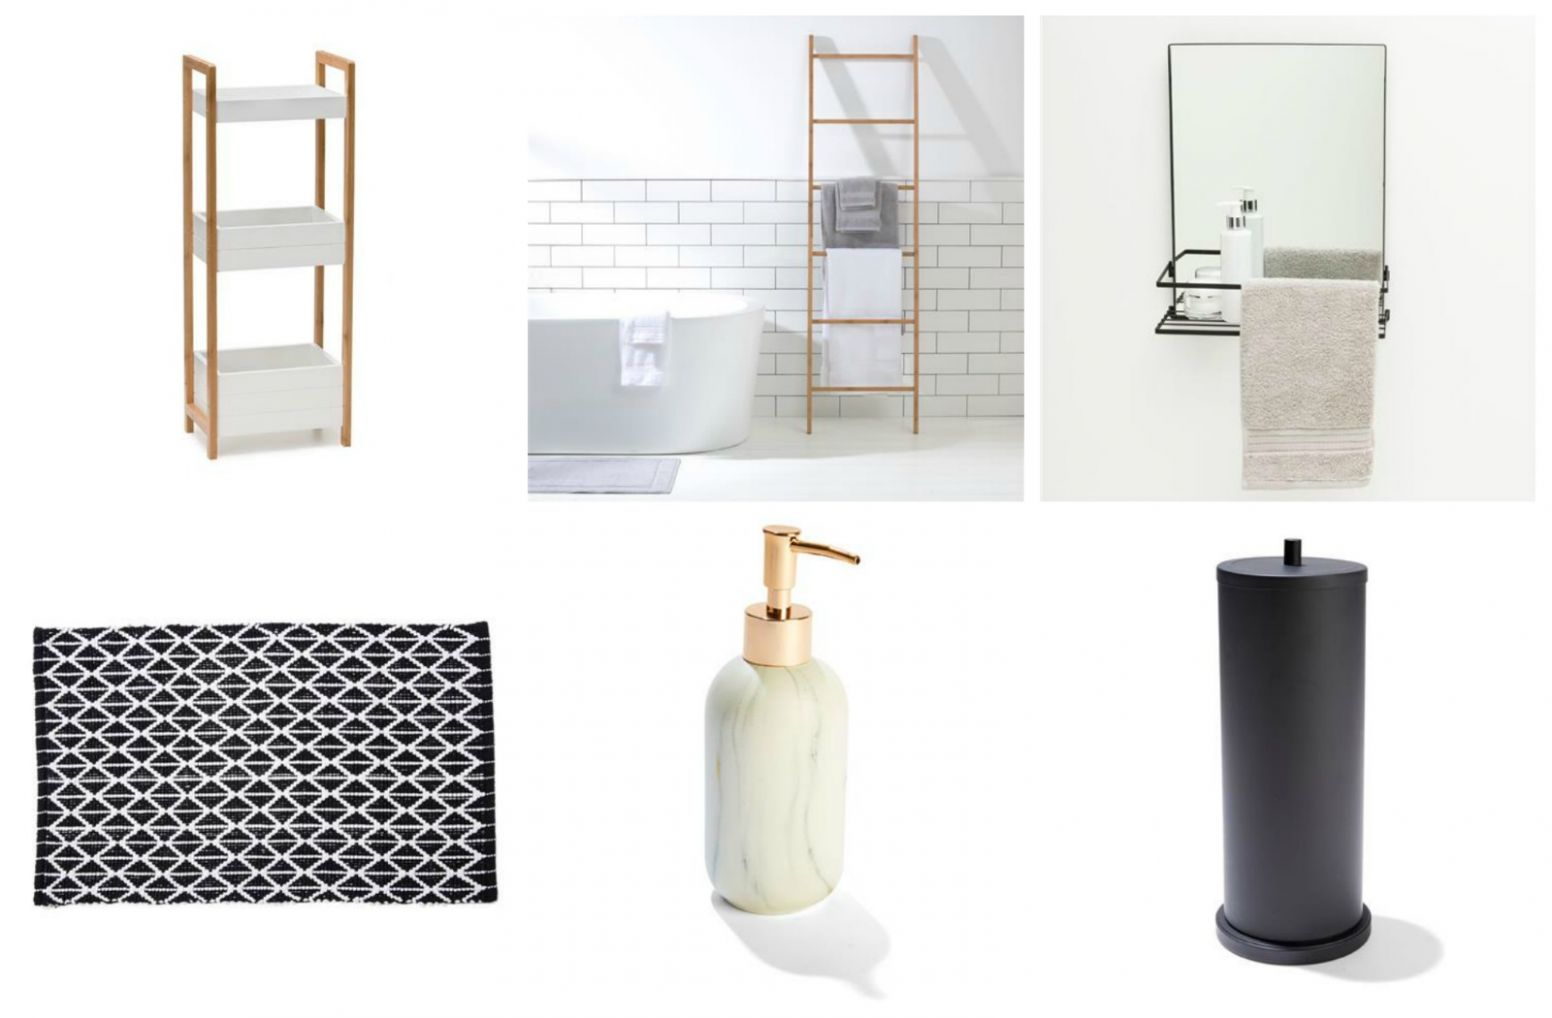 Cheap and Chic Bathroom Accessories and Storage from Kmart - The ..